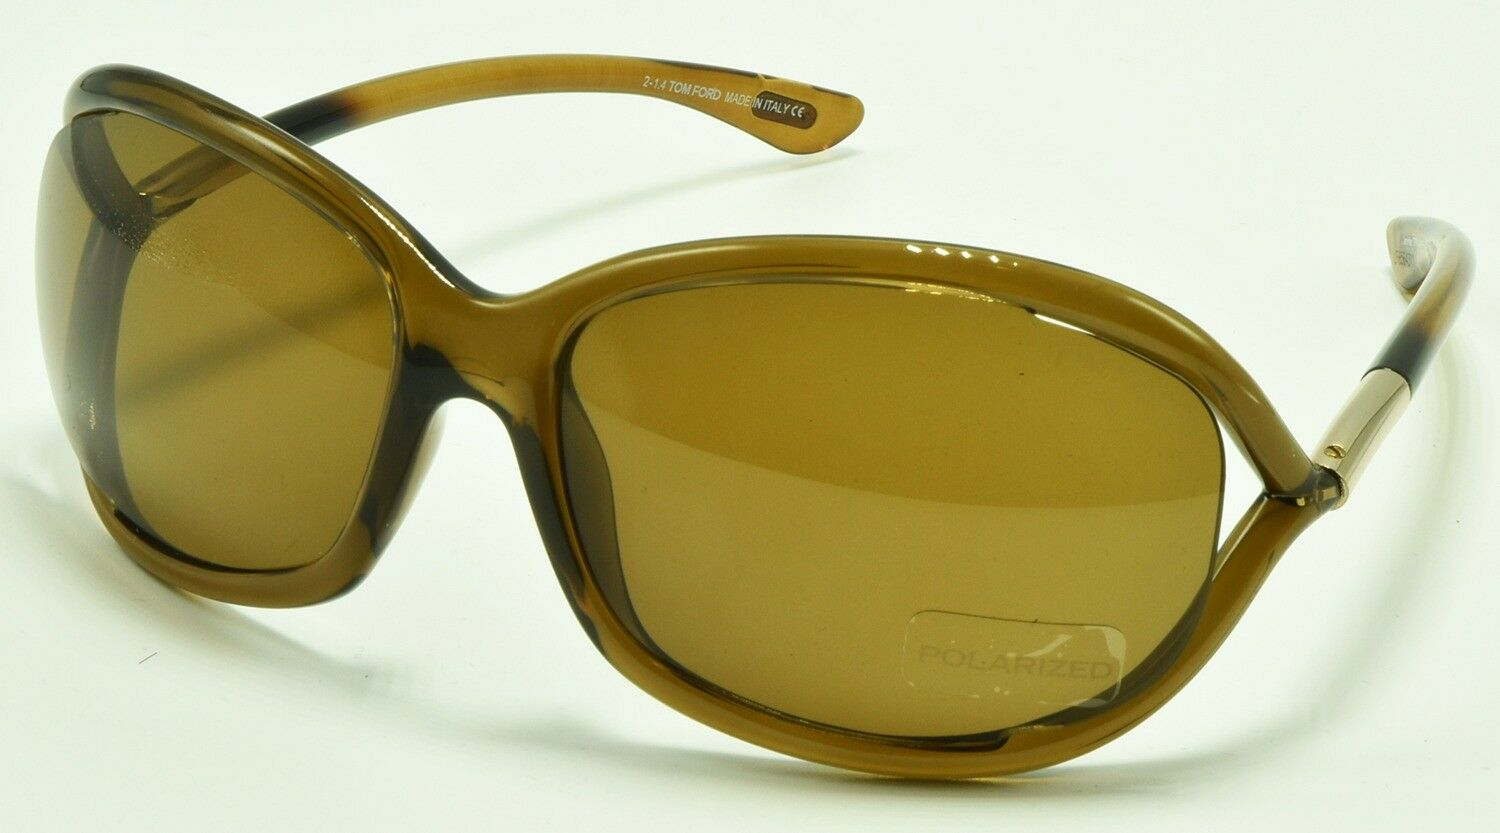 ee7cb39e49 Buy Tom Ford Jennifer TF 8 48h Transparent Brown Polarized ...